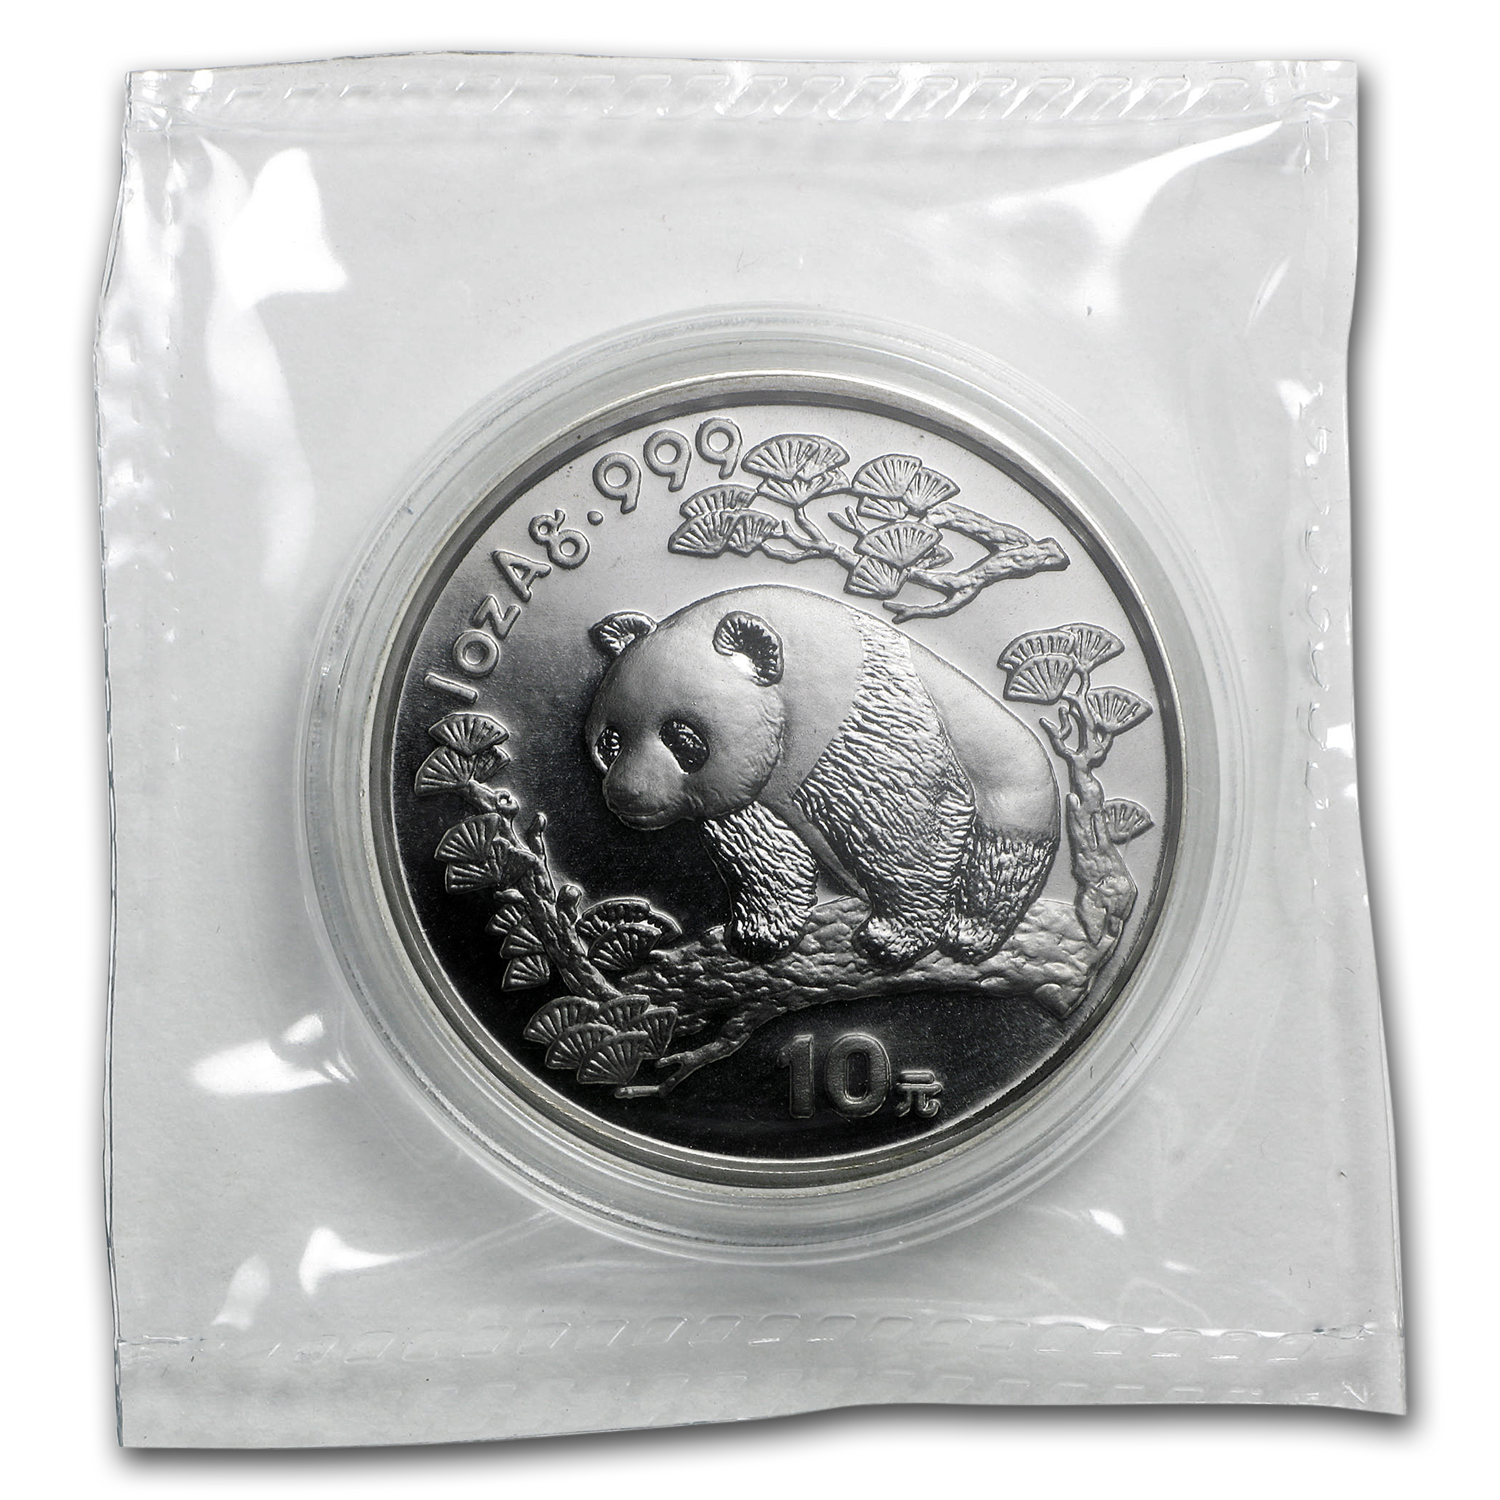 1997 1 oz Silver Chinese Panda Small Date BU (Sealed)